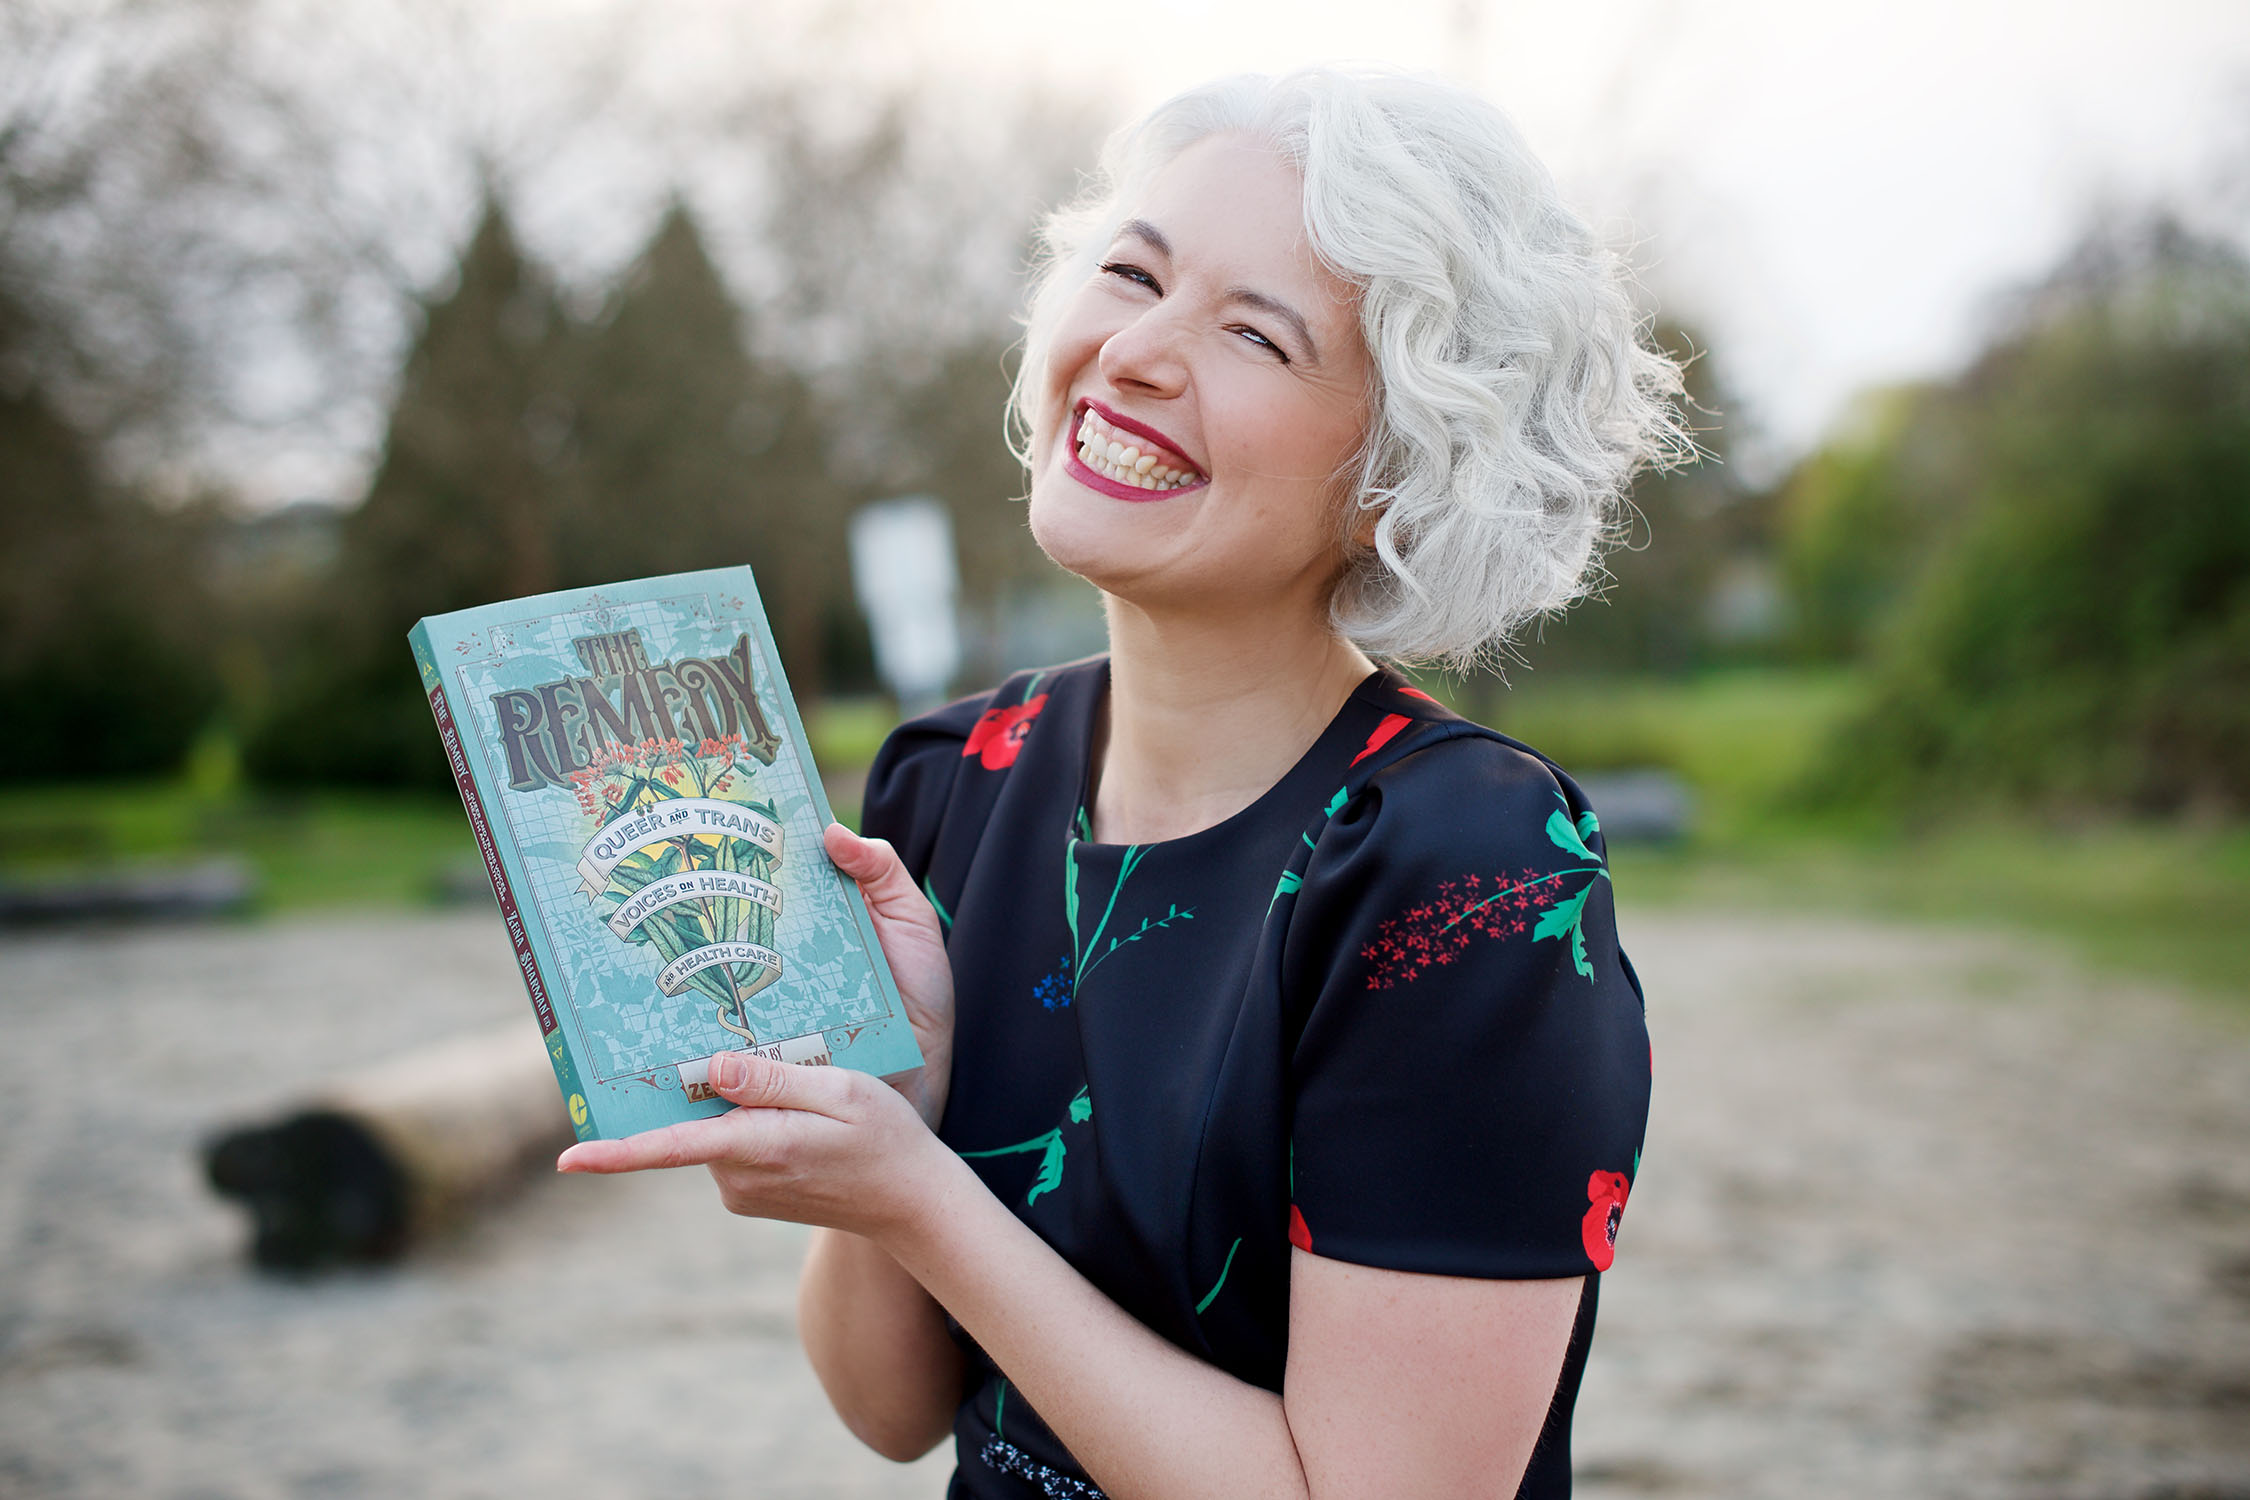 A woman smiles happily while holding a Lambda Literary award and a copy of The Remedy